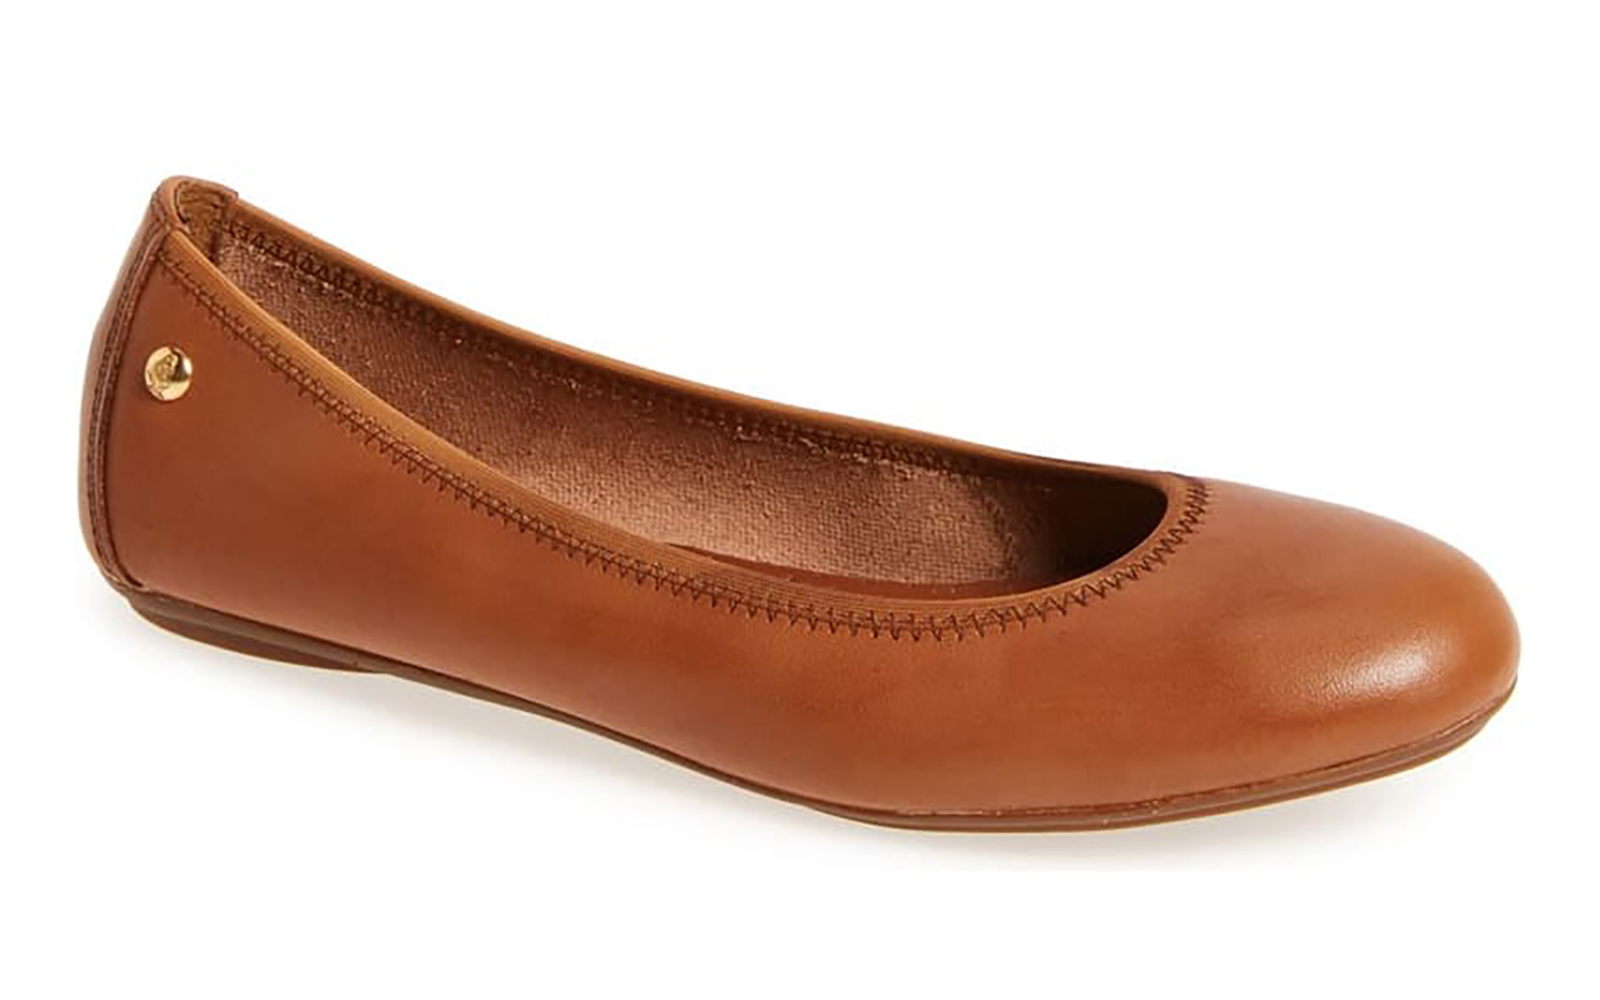 2c594a3950dd8 14 Most Comfortable Flats for 2019, According to Reviews | Travel + ...